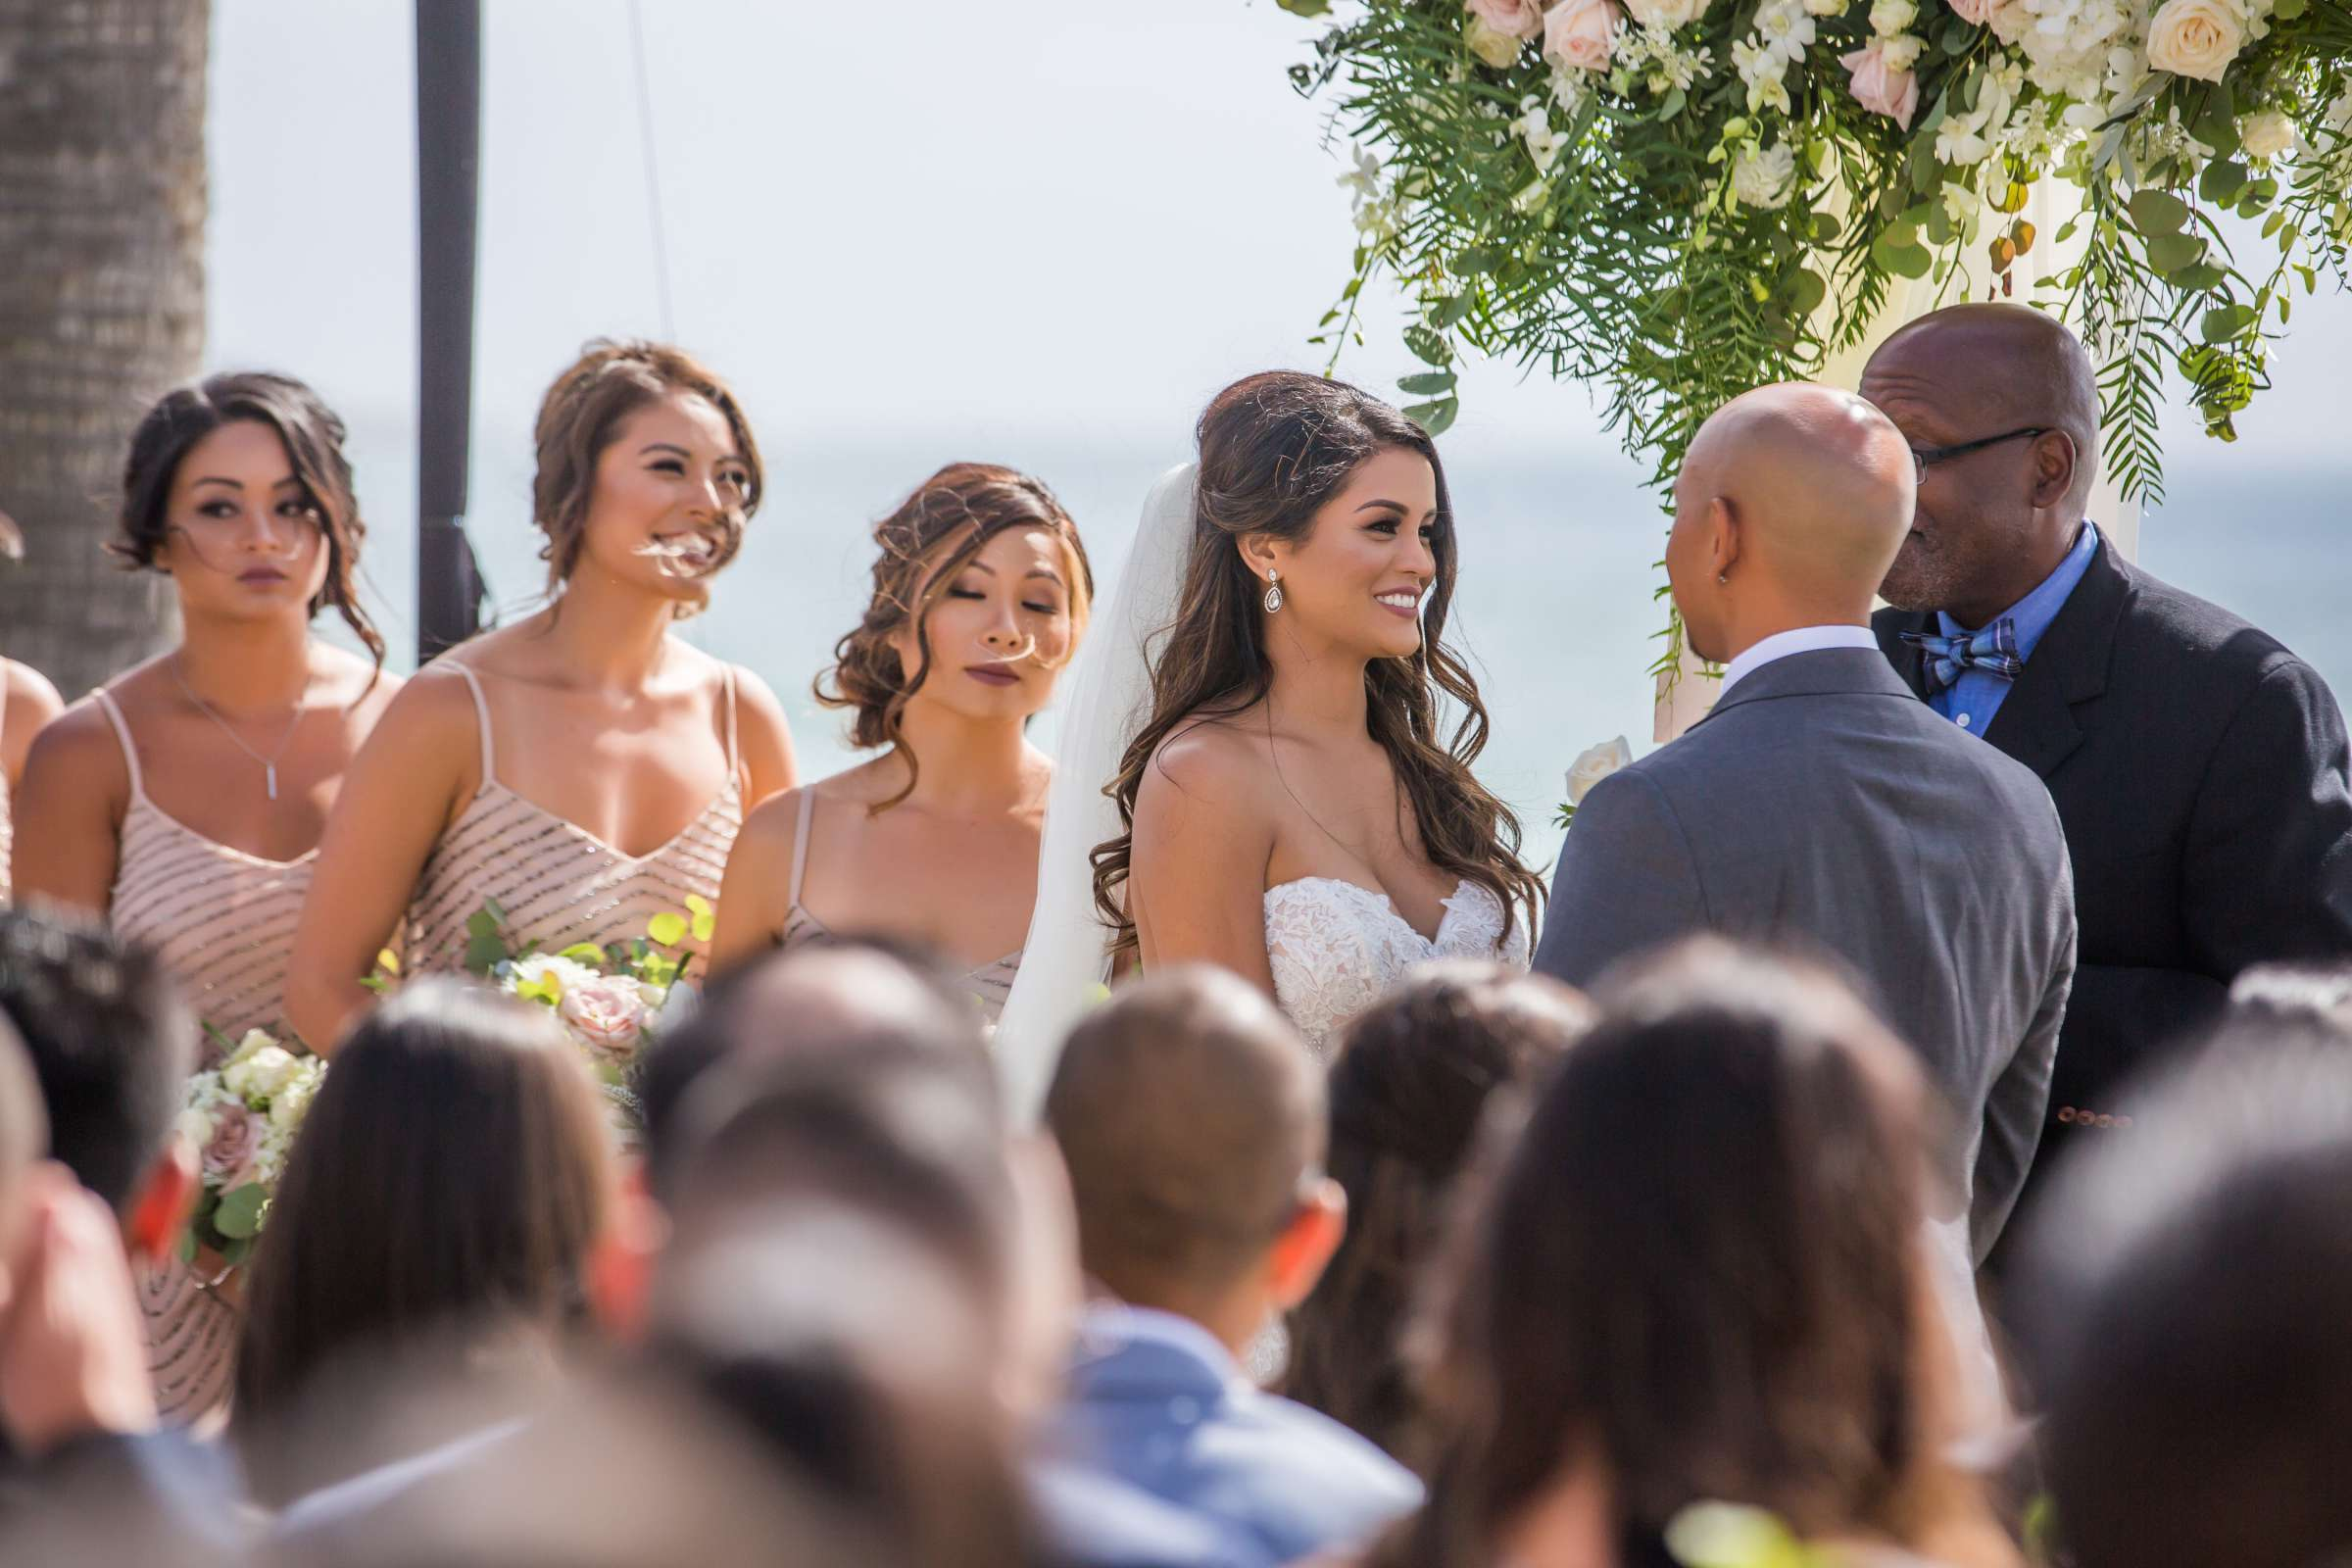 Scripps Seaside Forum Wedding coordinated by Lavish Weddings, Cindy and Justin Wedding Photo #381822 by True Photography